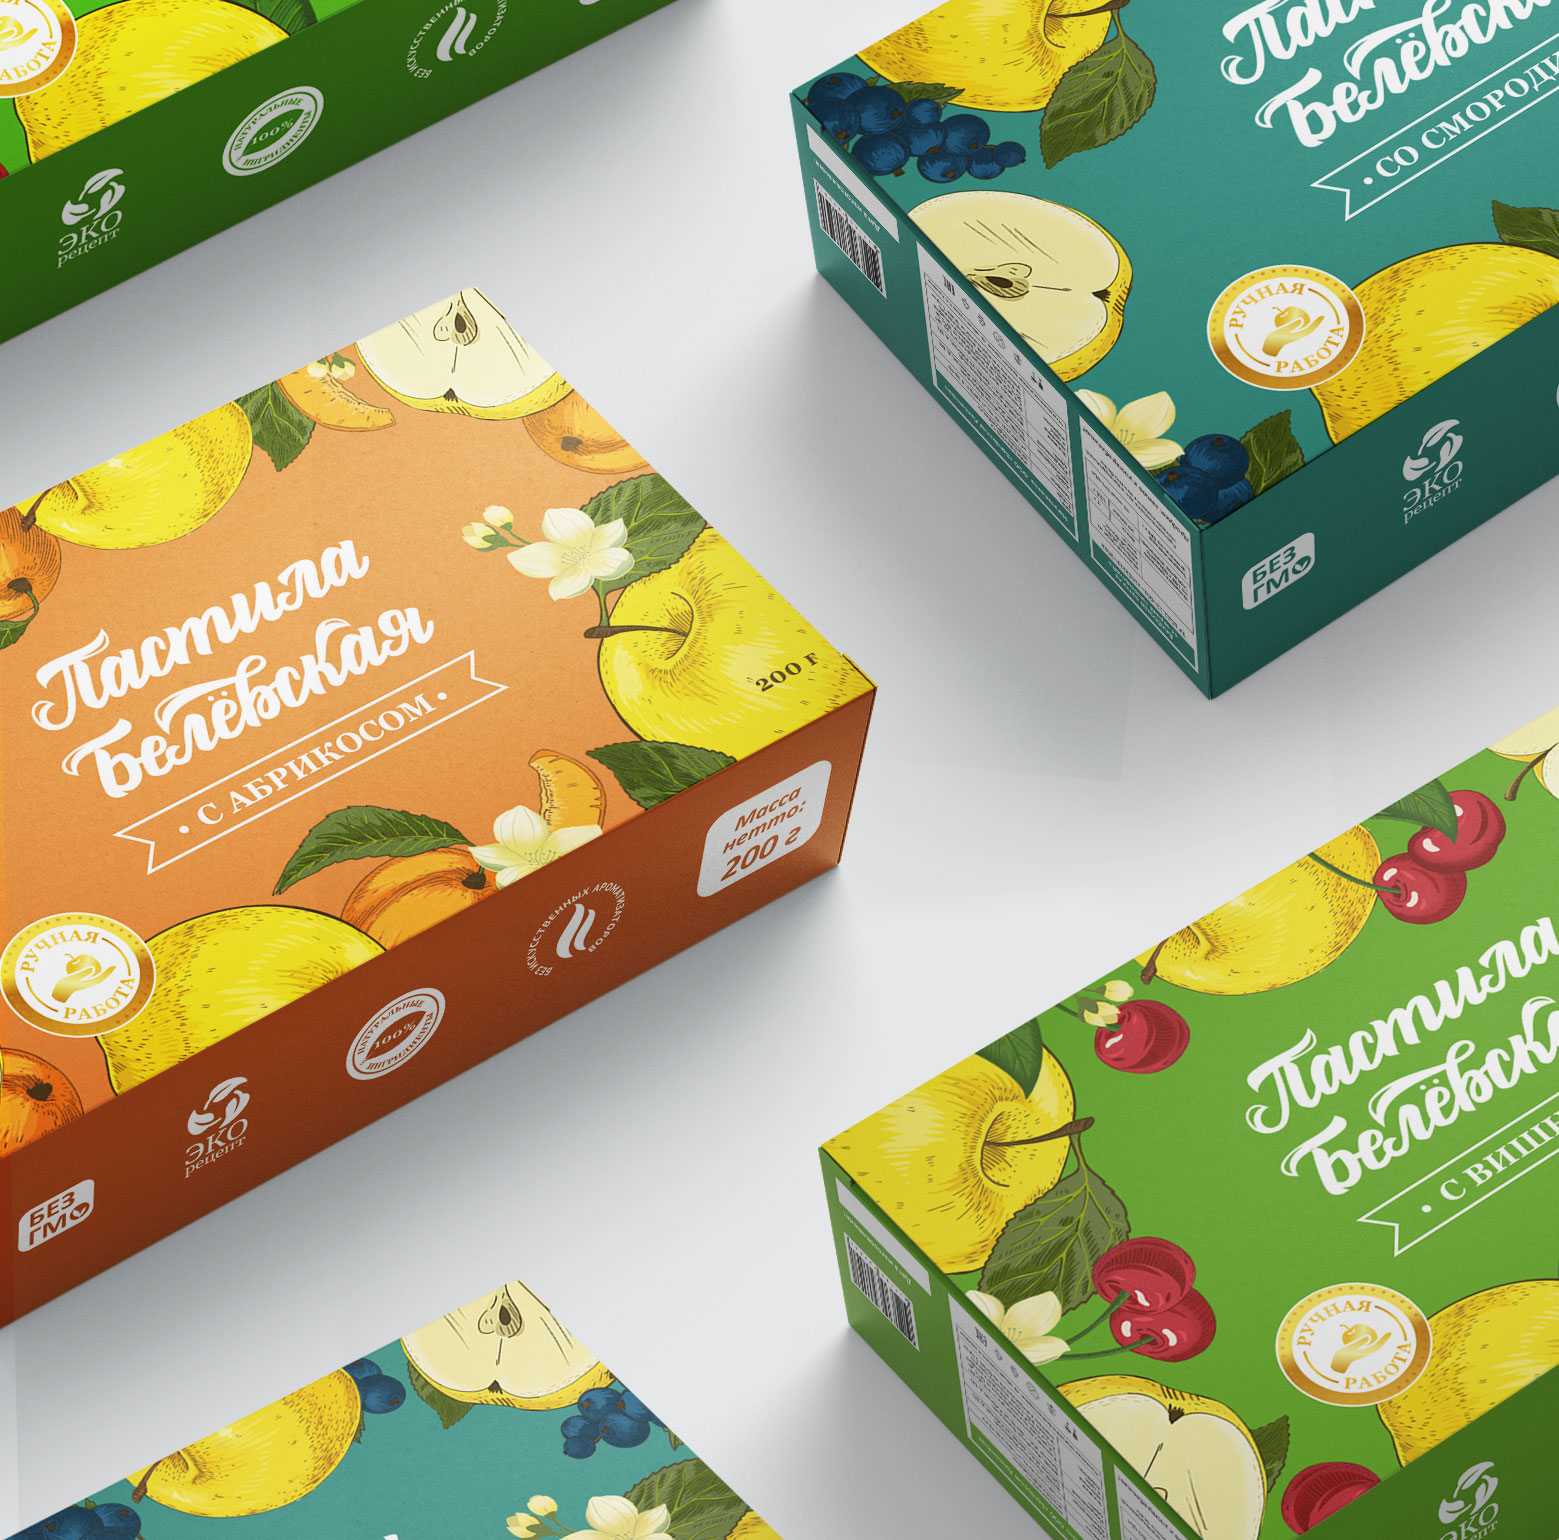 Non-Published Packaging Design Concept for Pastilla by Anna Bencic